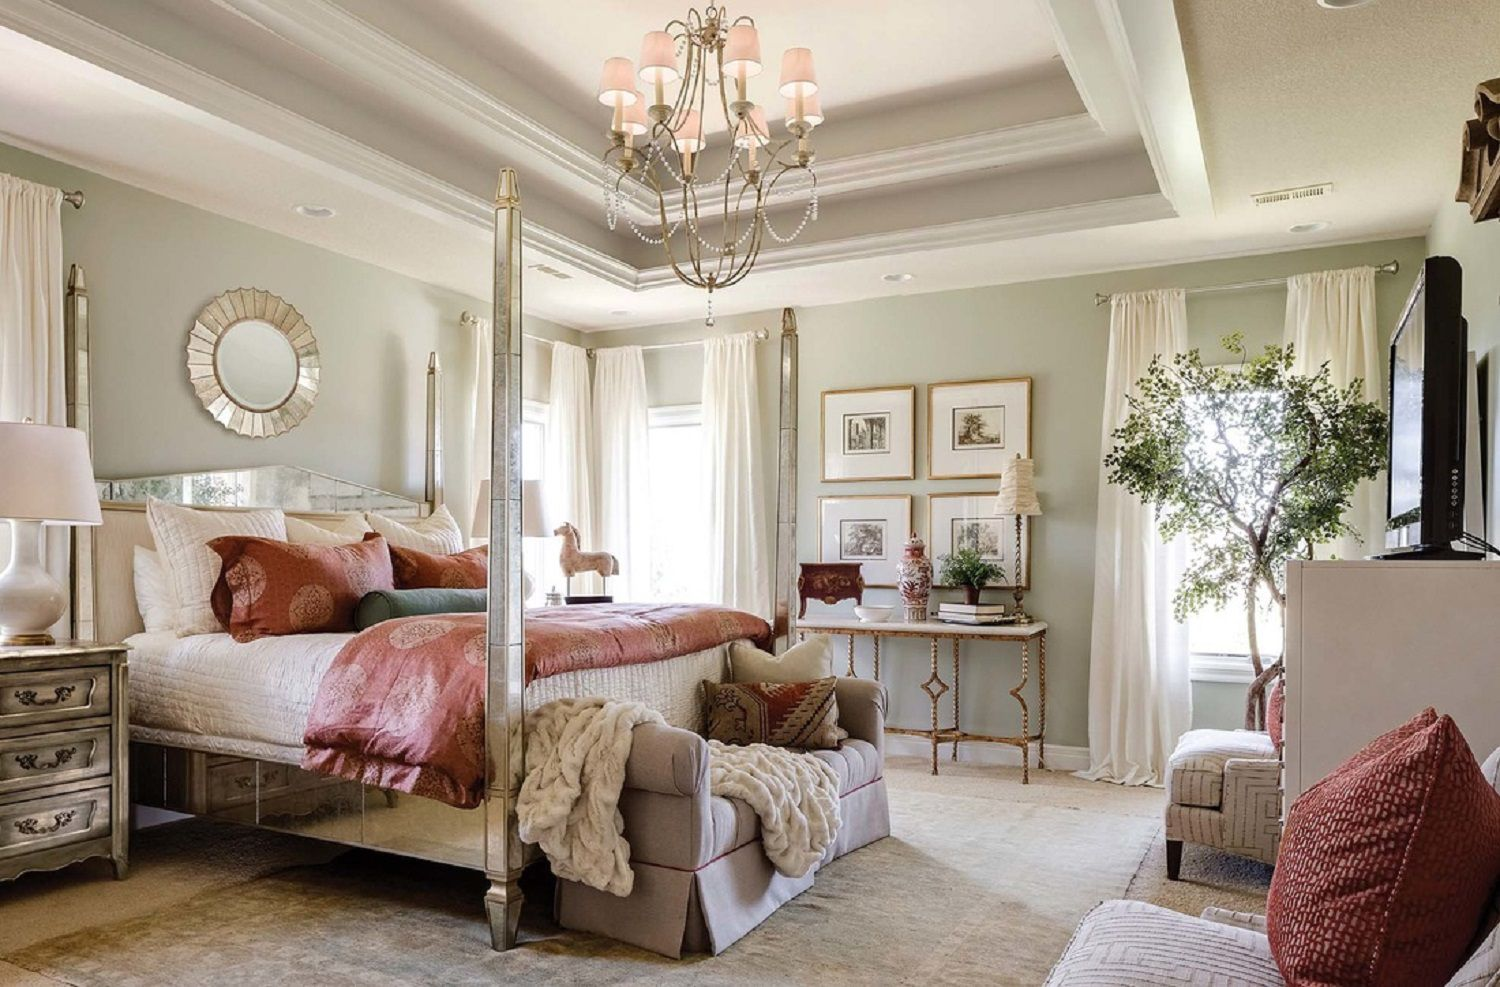 Y Bedroom | 100 Stunning Master Bedroom Design Ideas And Photos